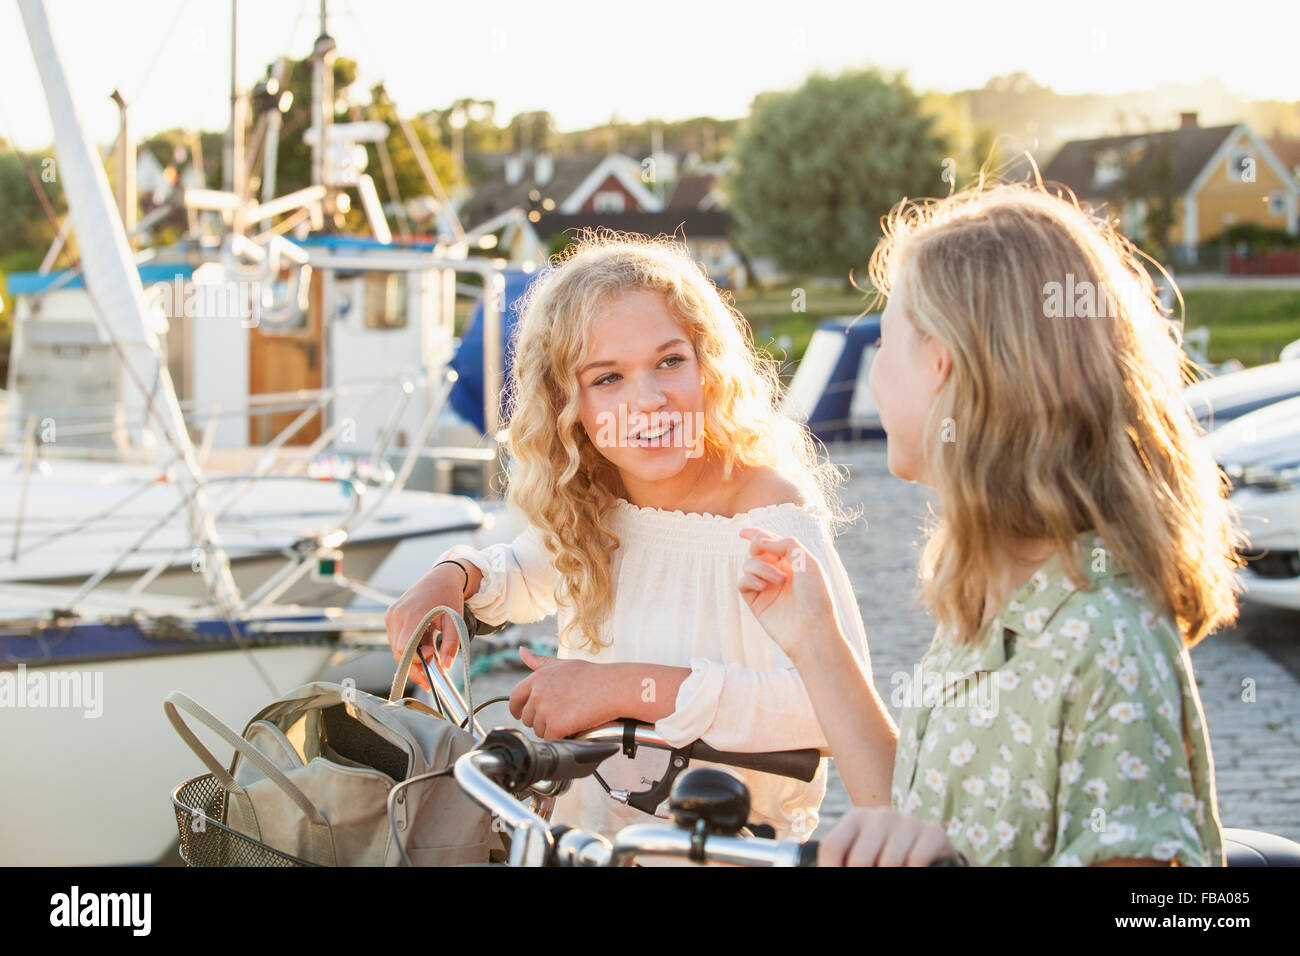 Sweden, Blekinge, Hallevik, Two teenage girls(14-15, 16-17) with bicycles talking at marina bay - Stock Image